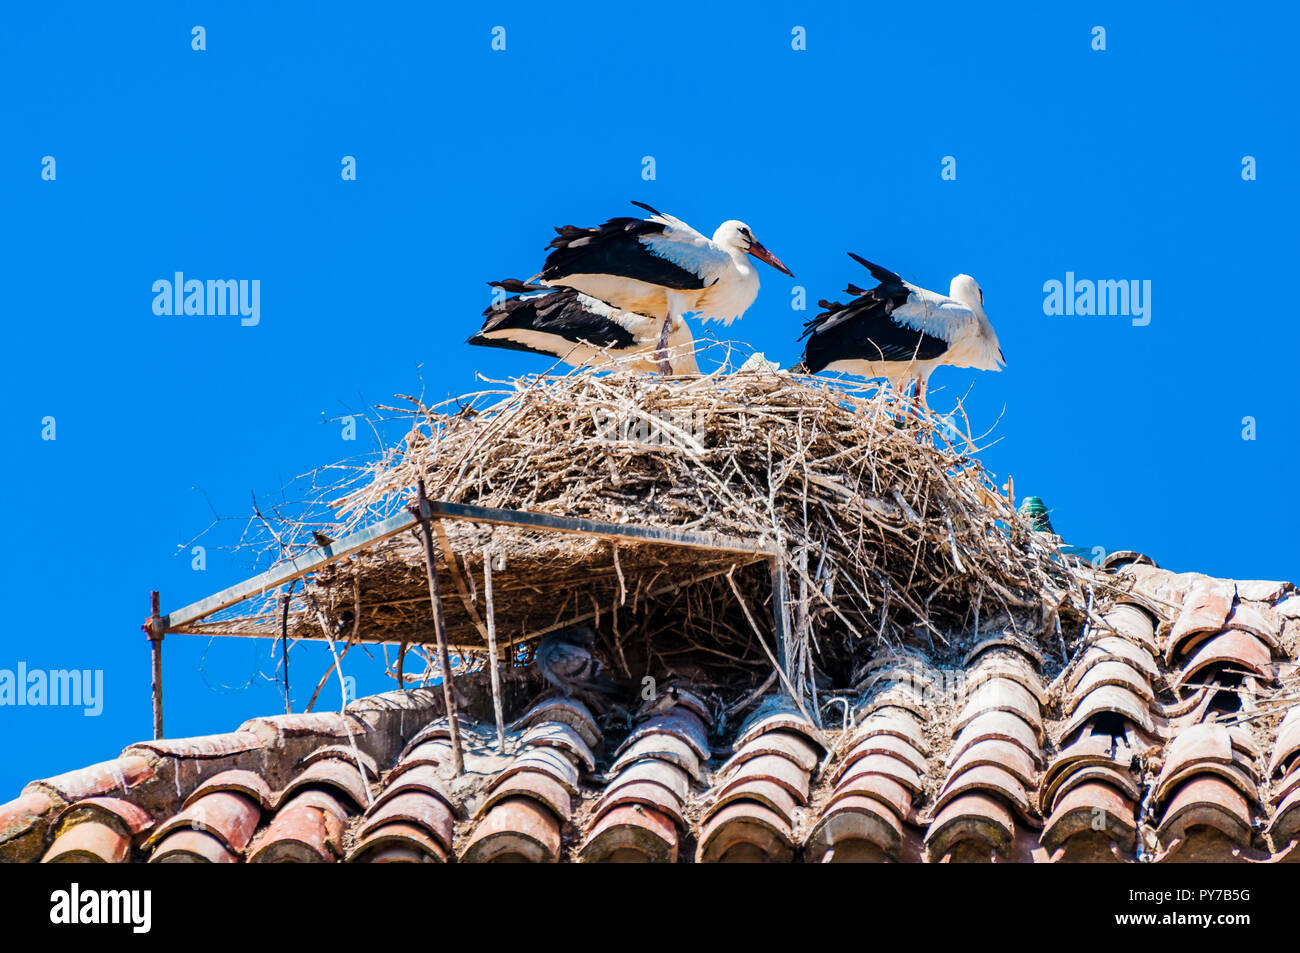 Nest of stork on a roof. Village of El Gordo, the town with the largest stork colony in Spain. El Gordo, Caceres, Extremadura, Spain, Europe - Stock Image